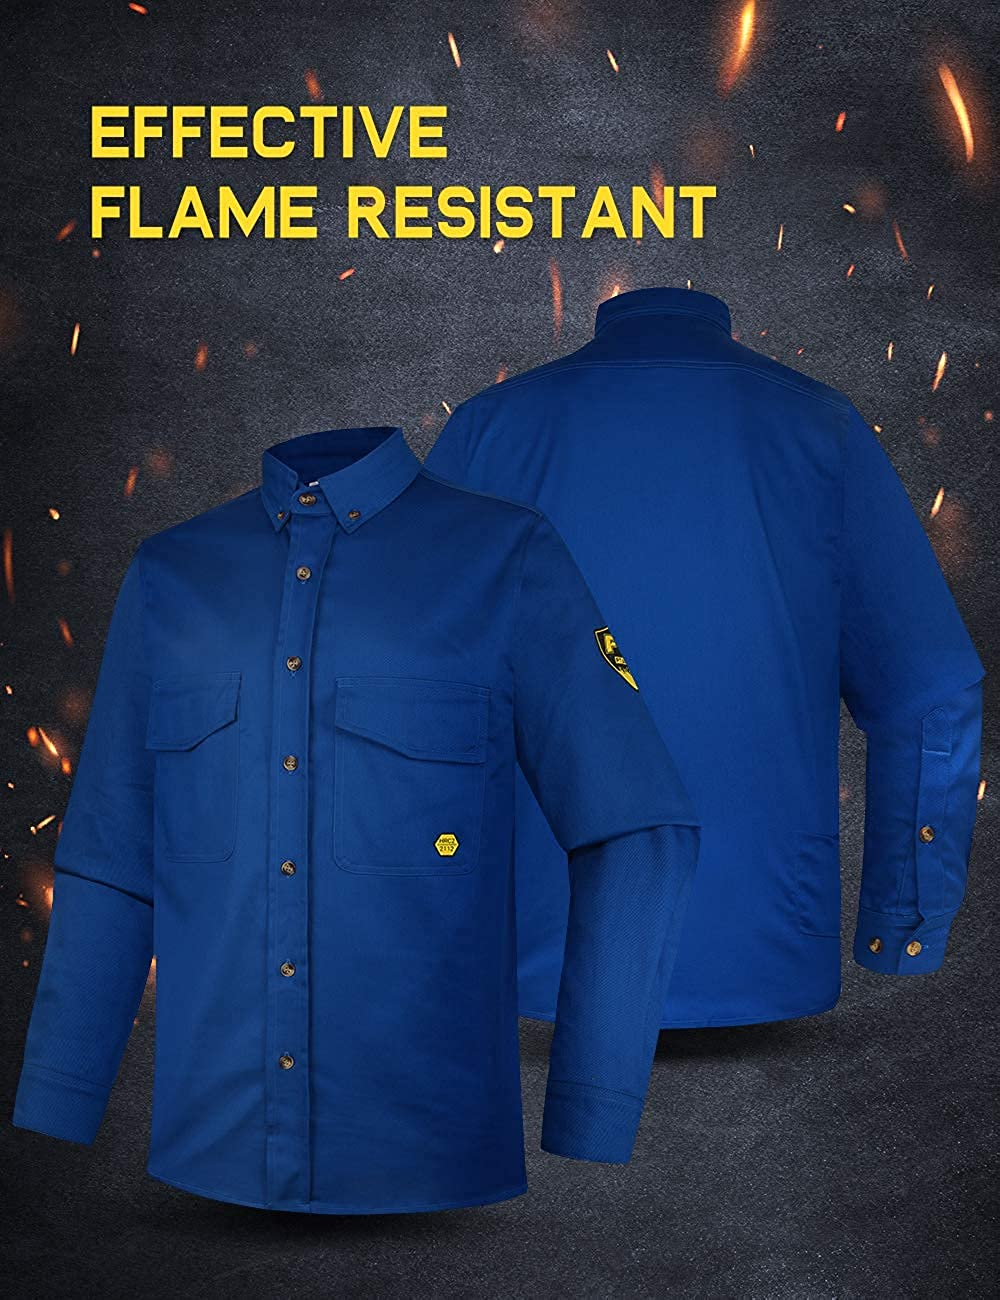 PTAHDUS 7.5oz Men's Flame Resistant Button Down Shirt, Men Mid-Weight Twill FR Work Shirt Ideal for Welding and Oil Worker